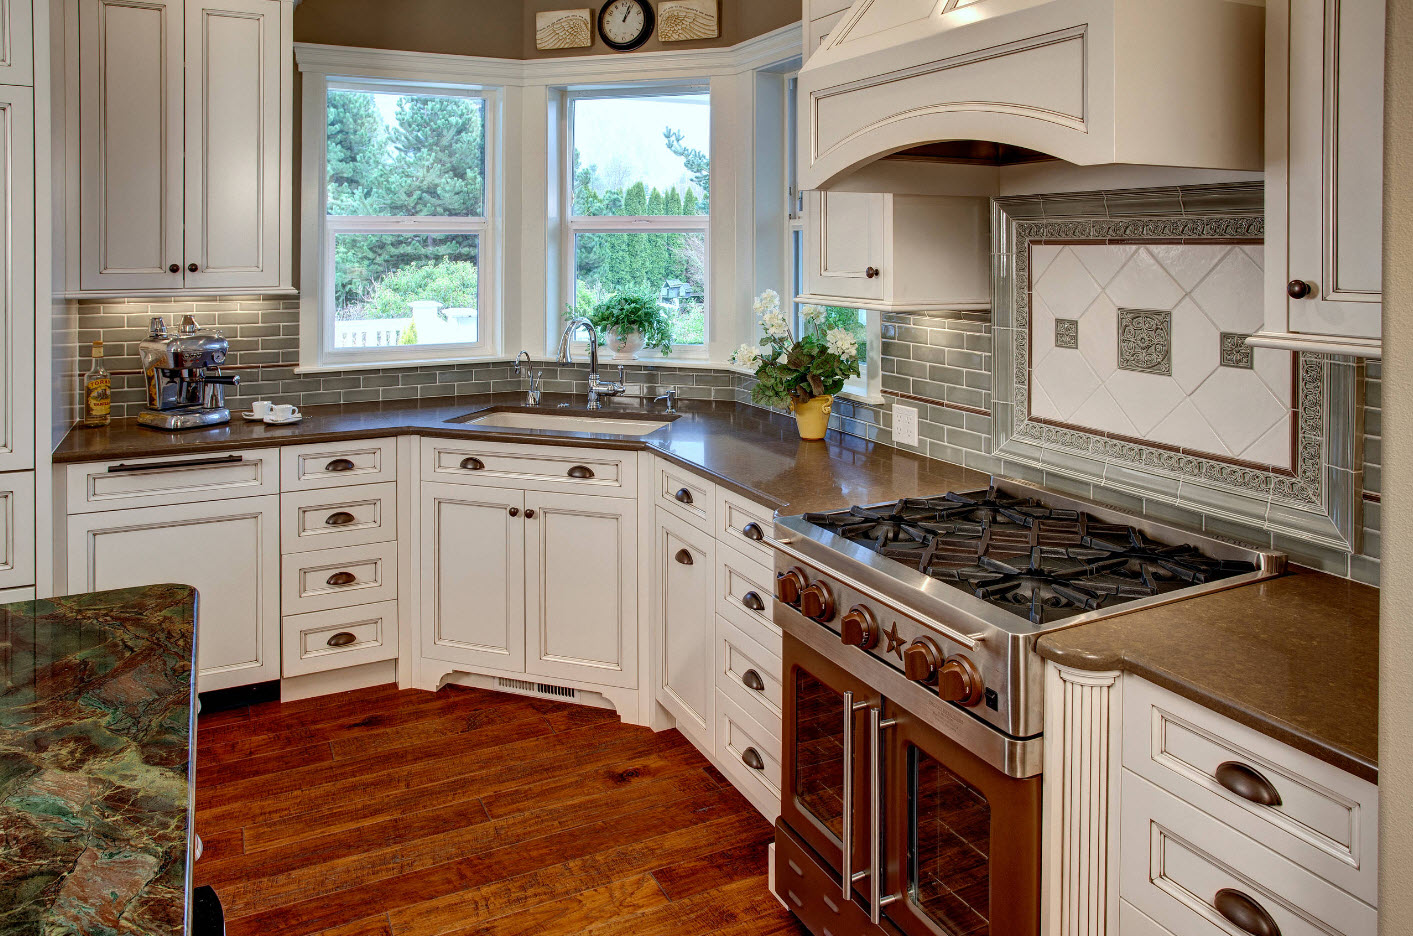 """Semi-angular """"bay"""" location of the l-shaped kitchen in rustic style"""